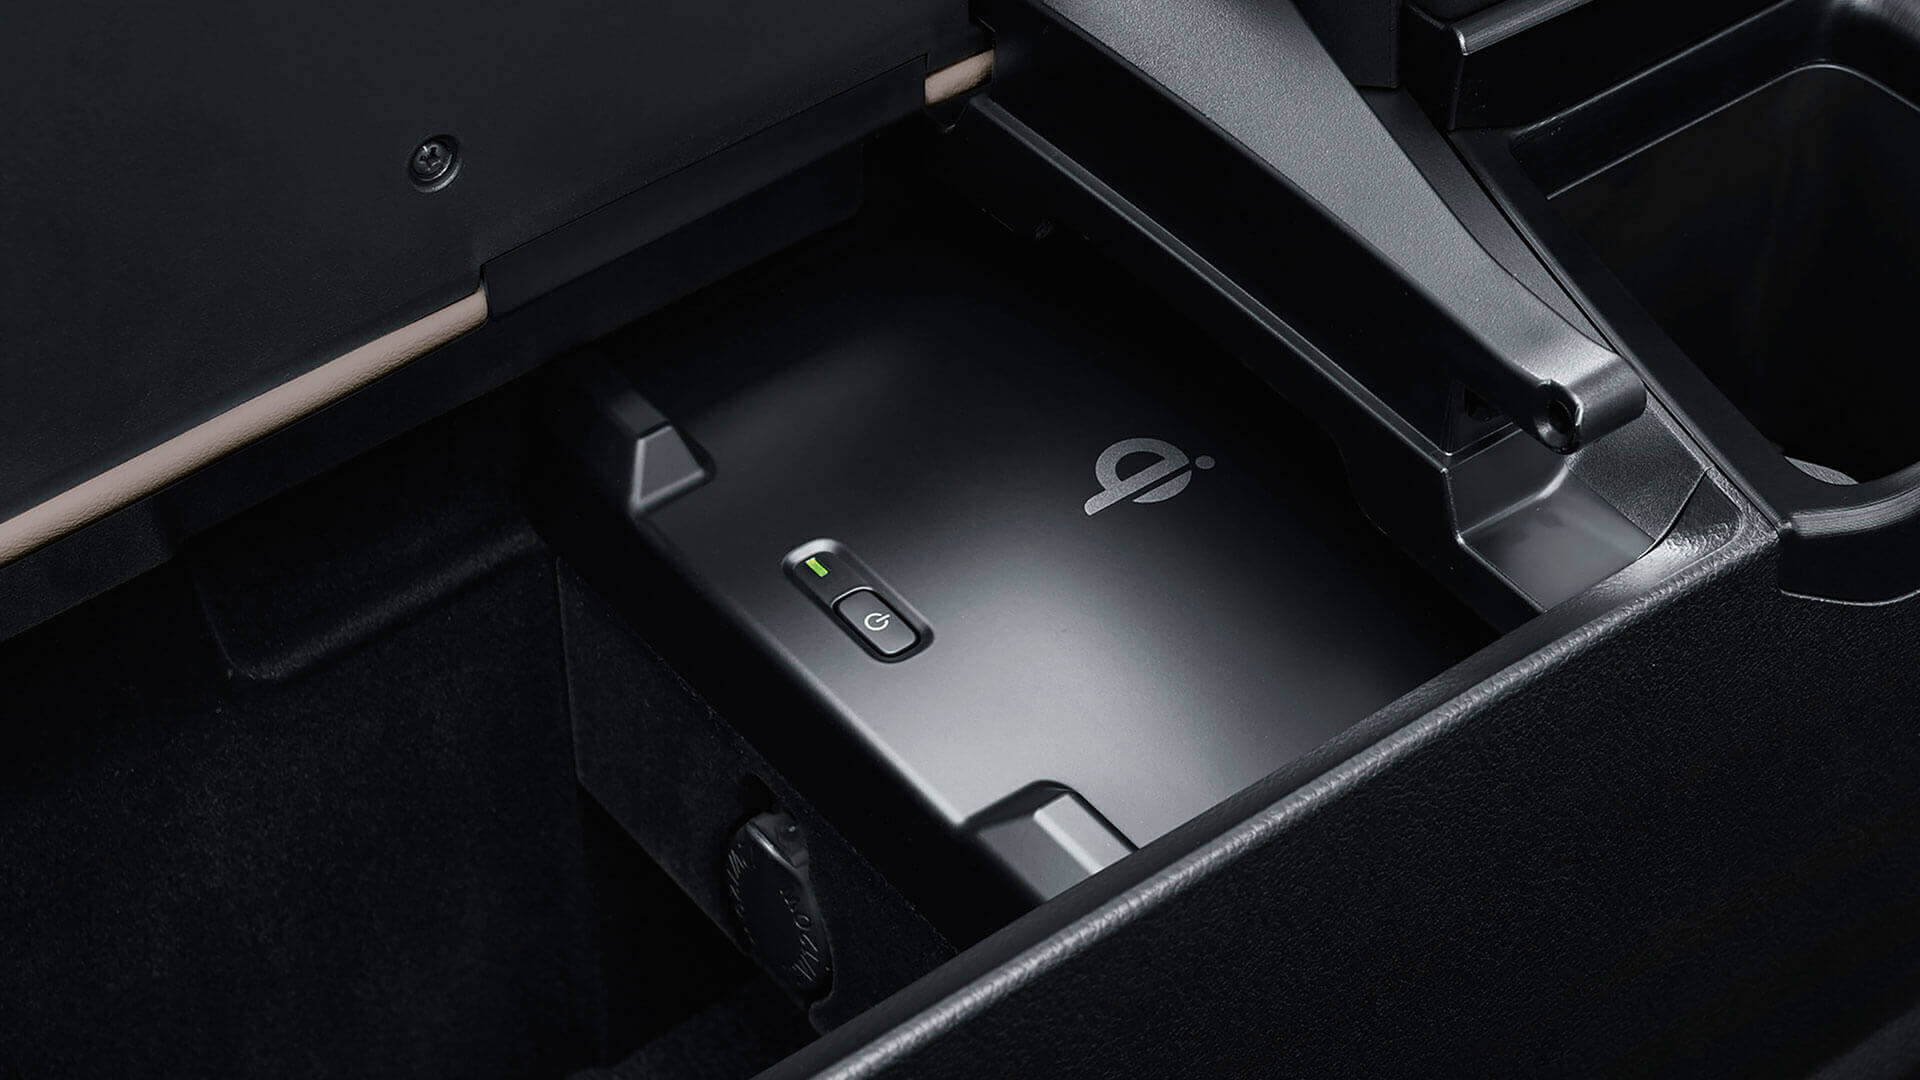 2019 lexus es hybrid experience feature wireless charger